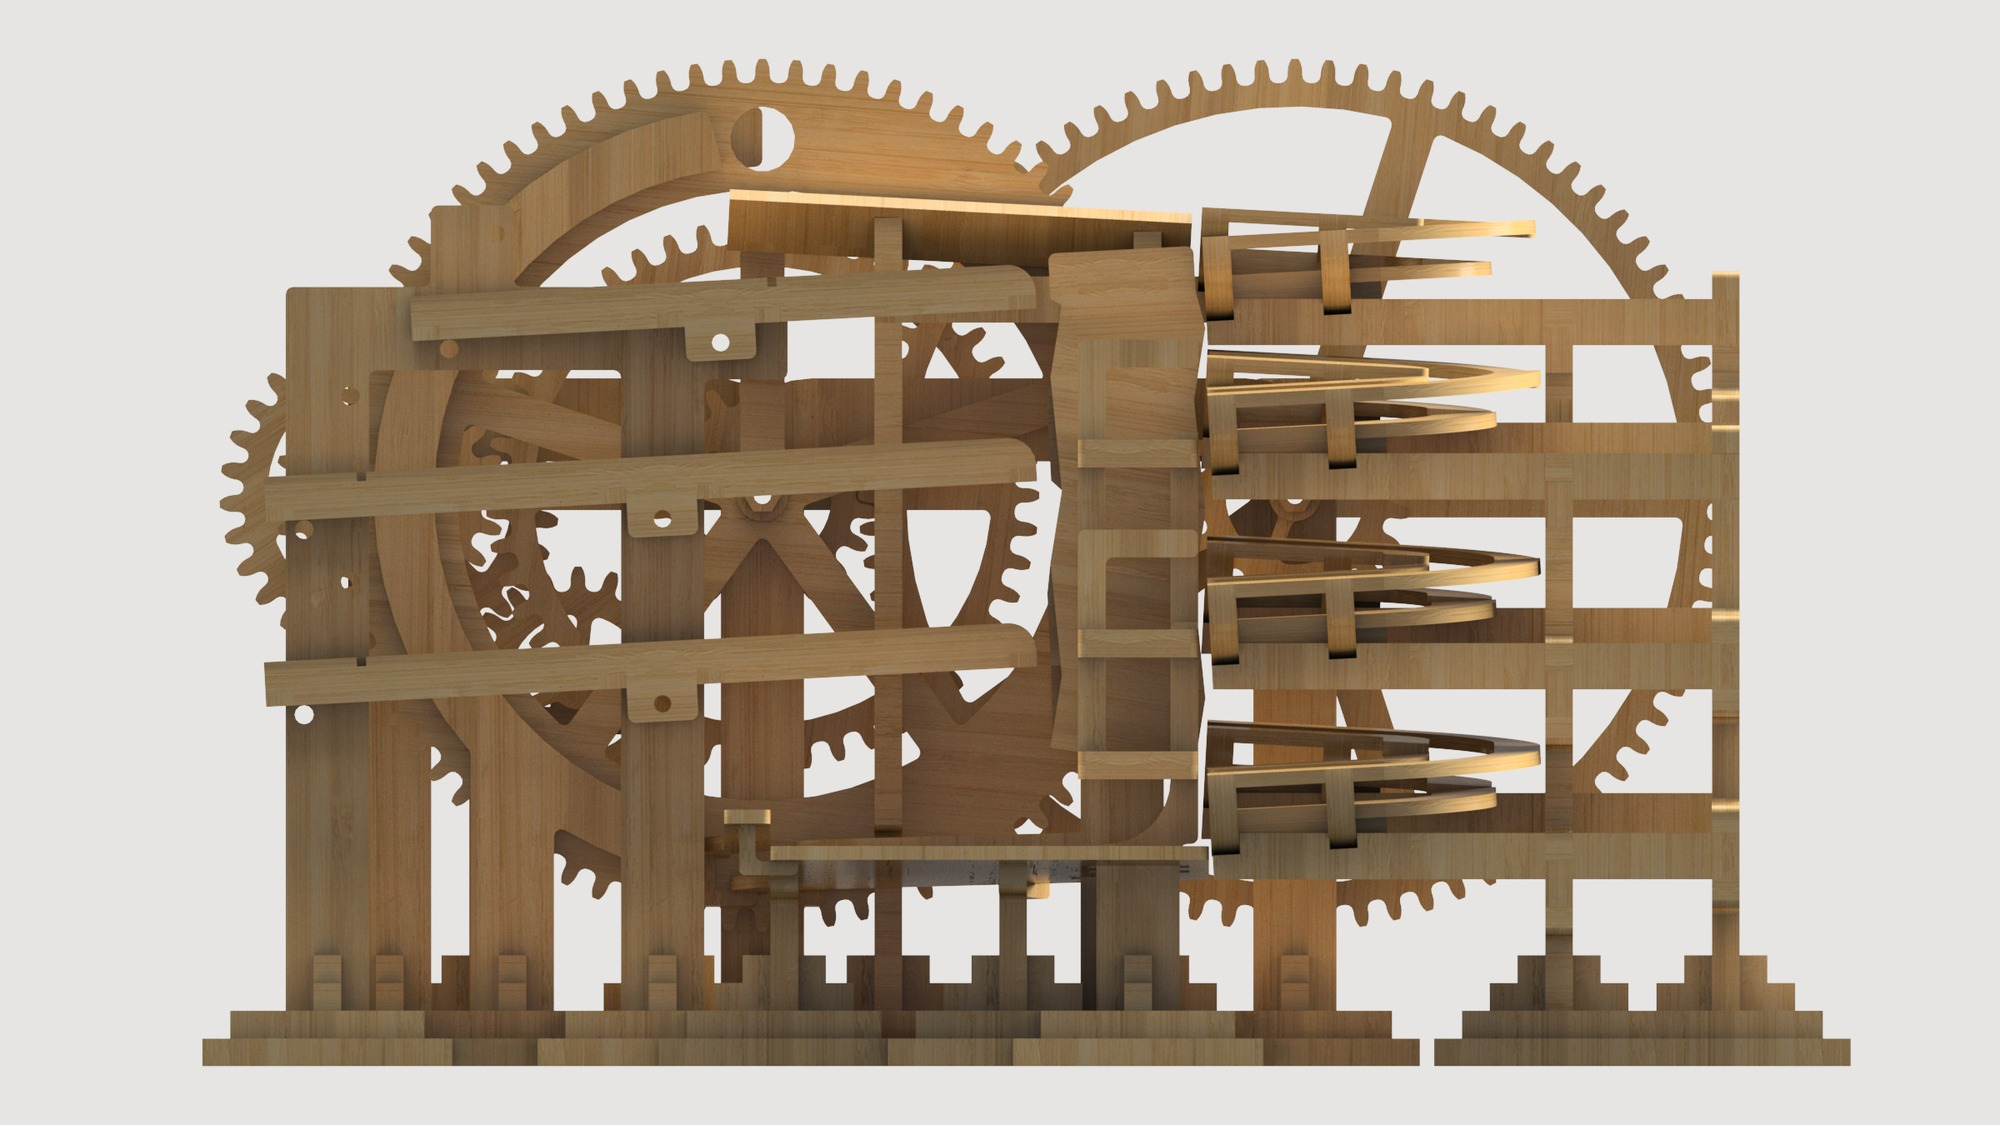 Marble_machine_clock_2014-dec-20_10-20-13pm-000_front